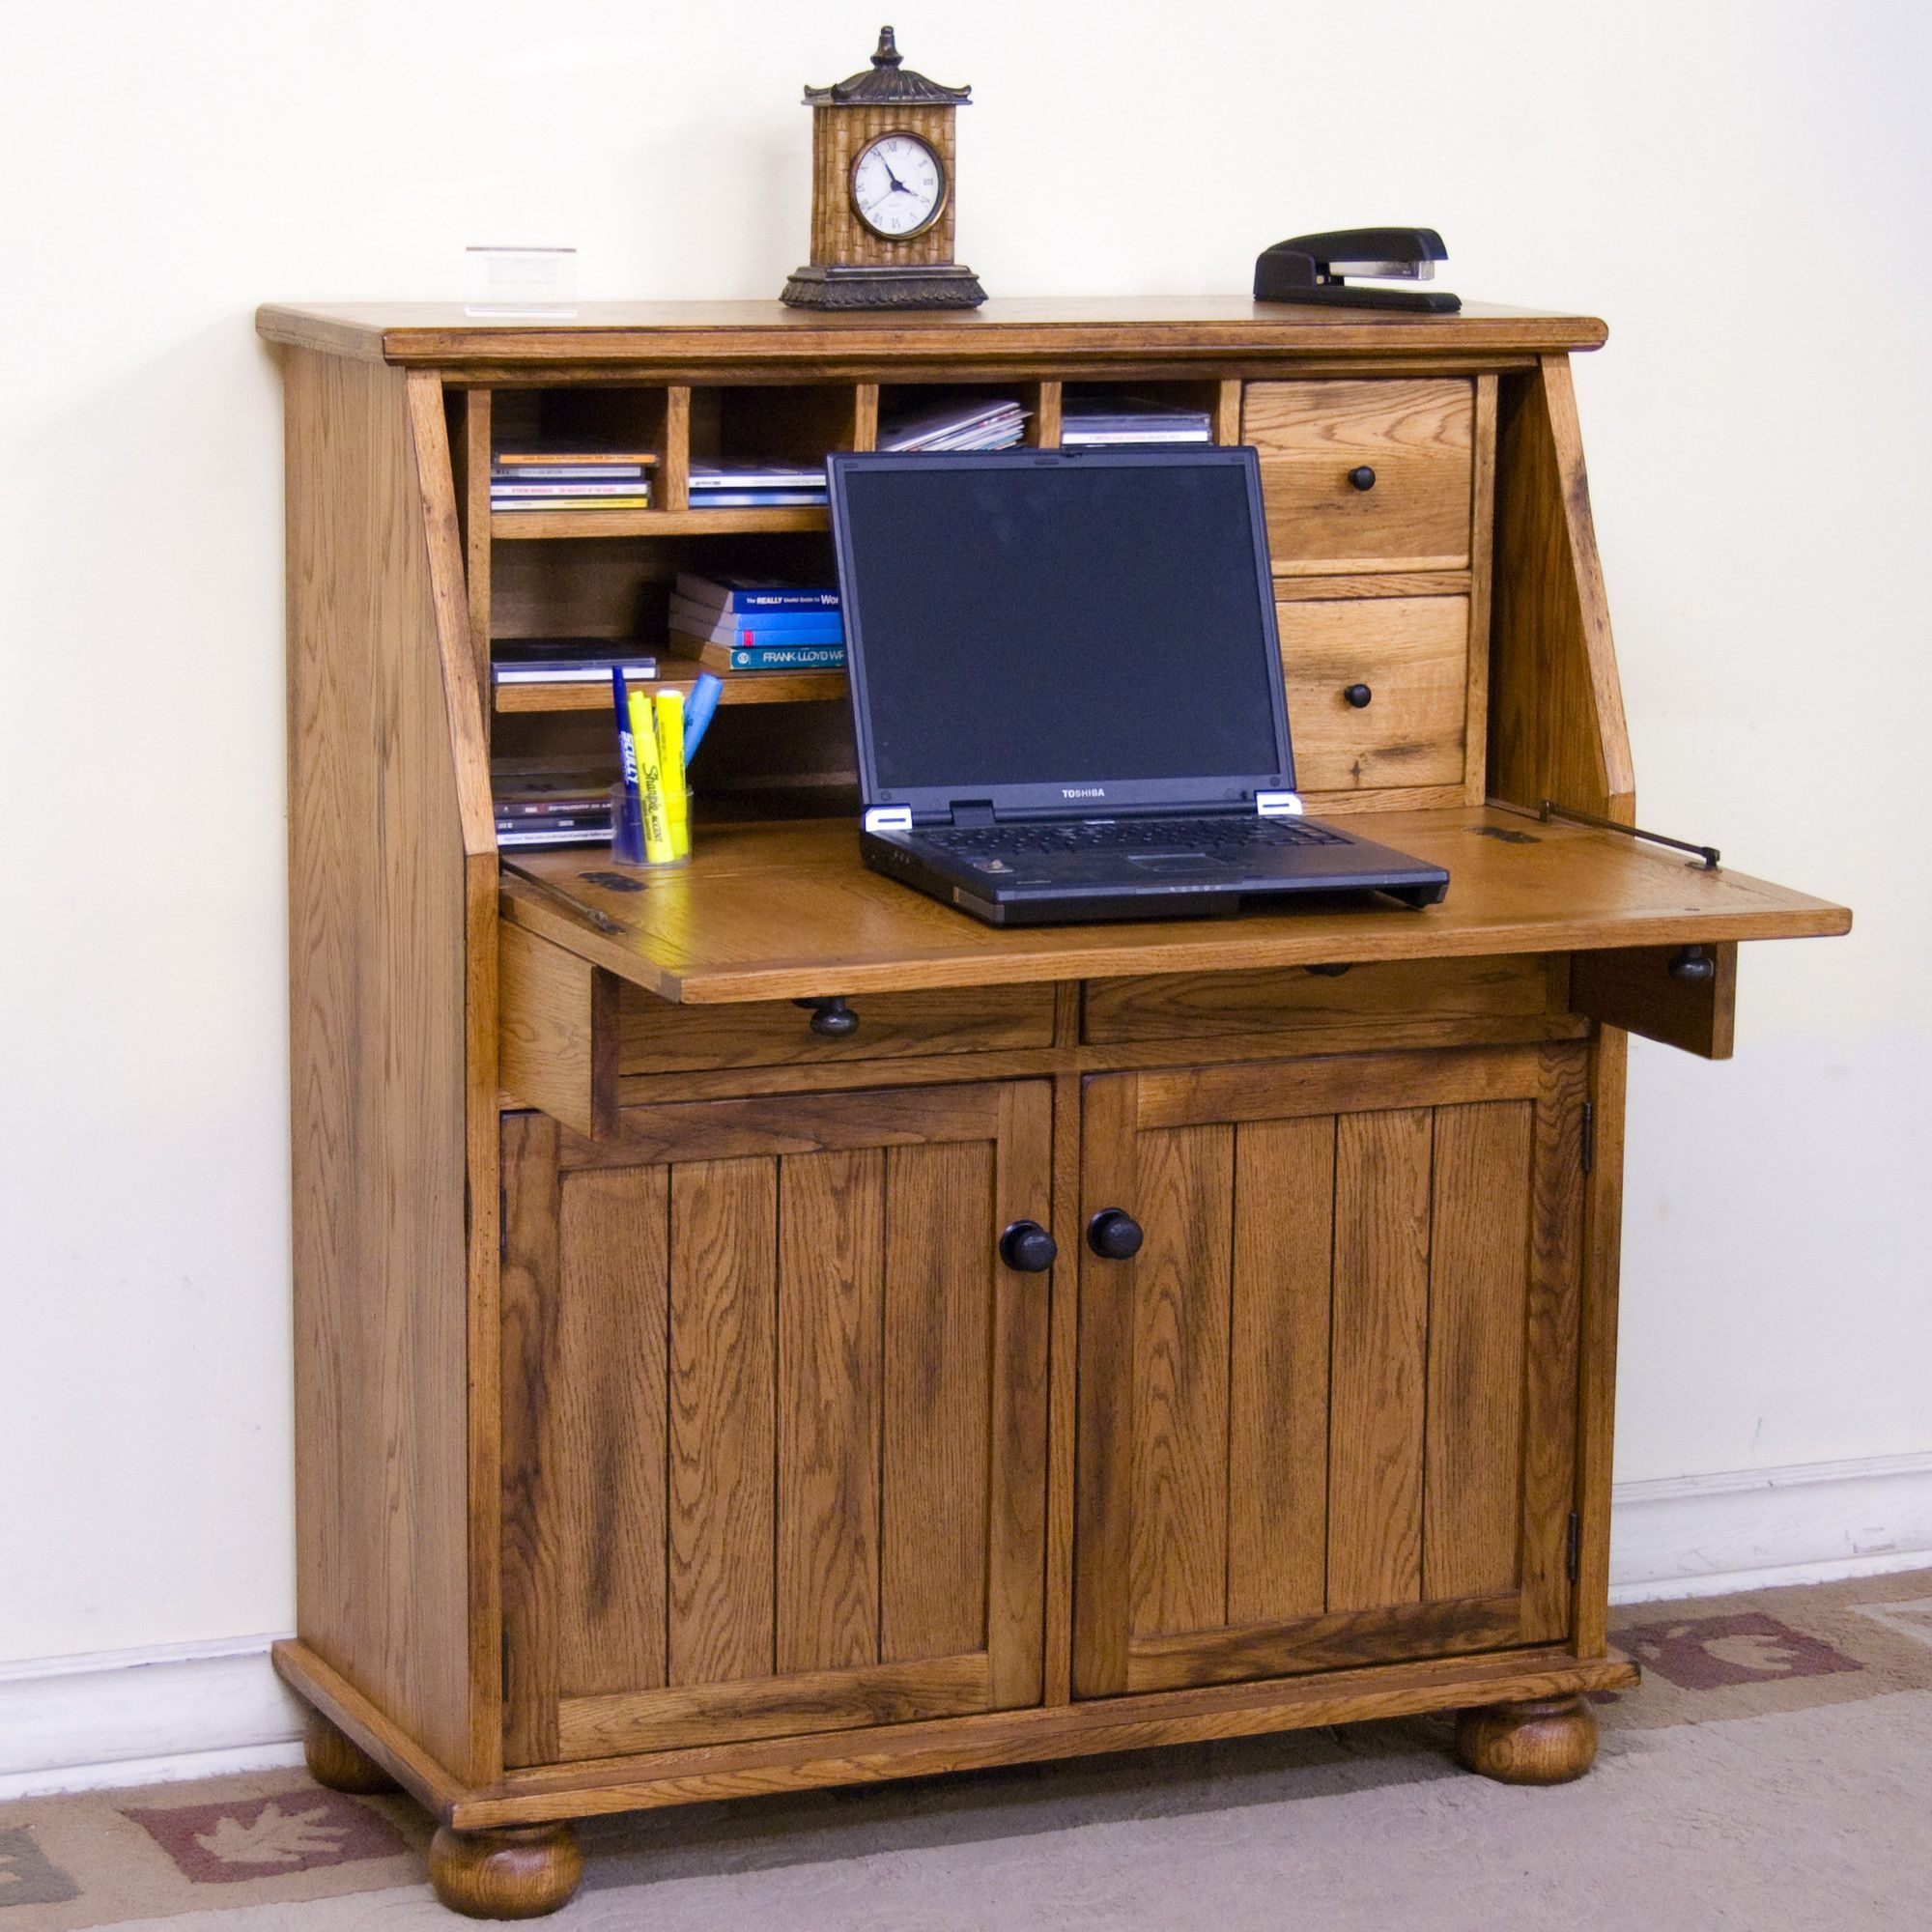 The Sedona Drop Leaf Laptop Desk Features Two Utility Drawers And One File  Drawer, Two Doors With Natural Slates, Drop Leaf Desk With A Pullout  Supporting ...